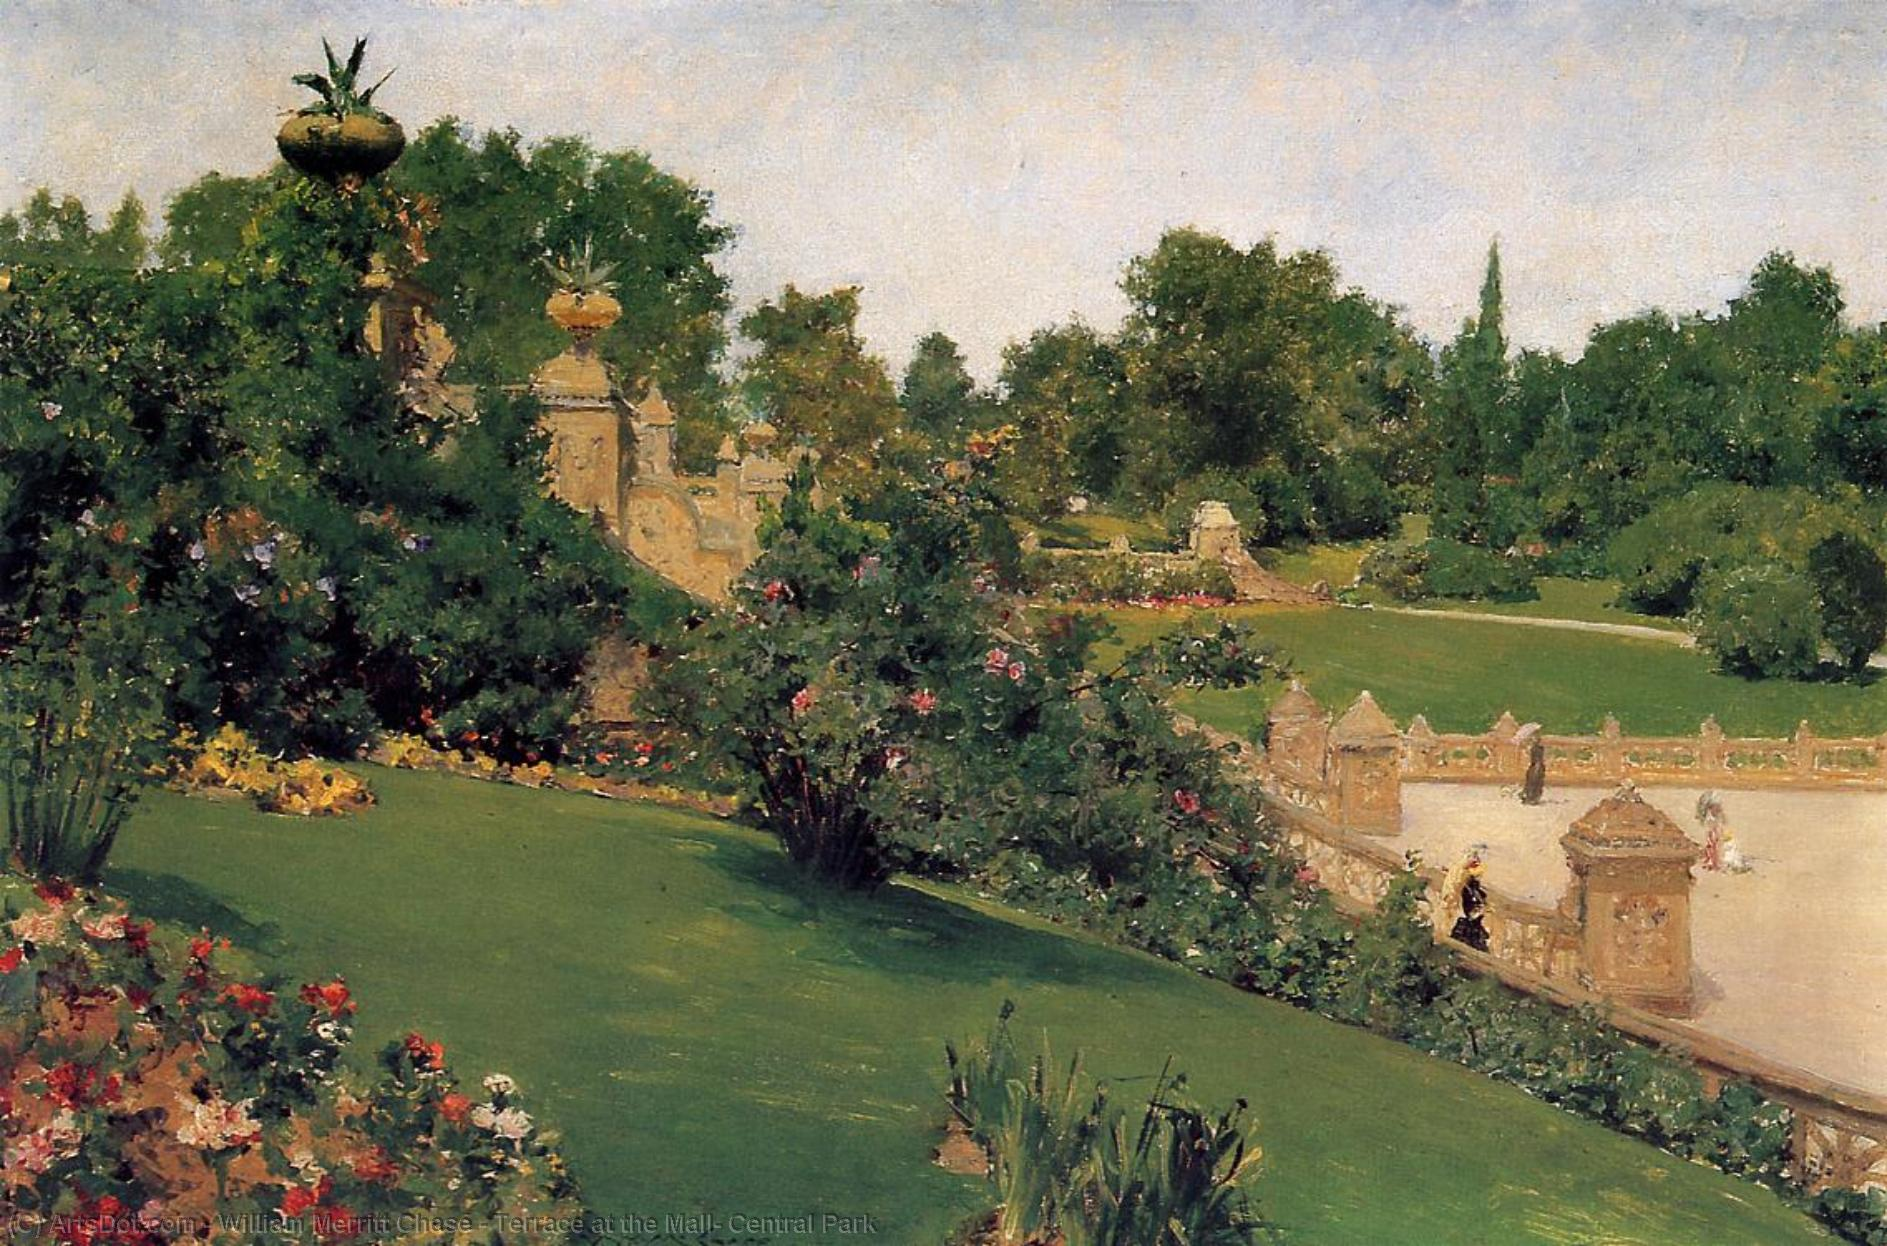 Wikioo.org - The Encyclopedia of Fine Arts - Painting, Artwork by William Merritt Chase - Terrace at the Mall, Central Park